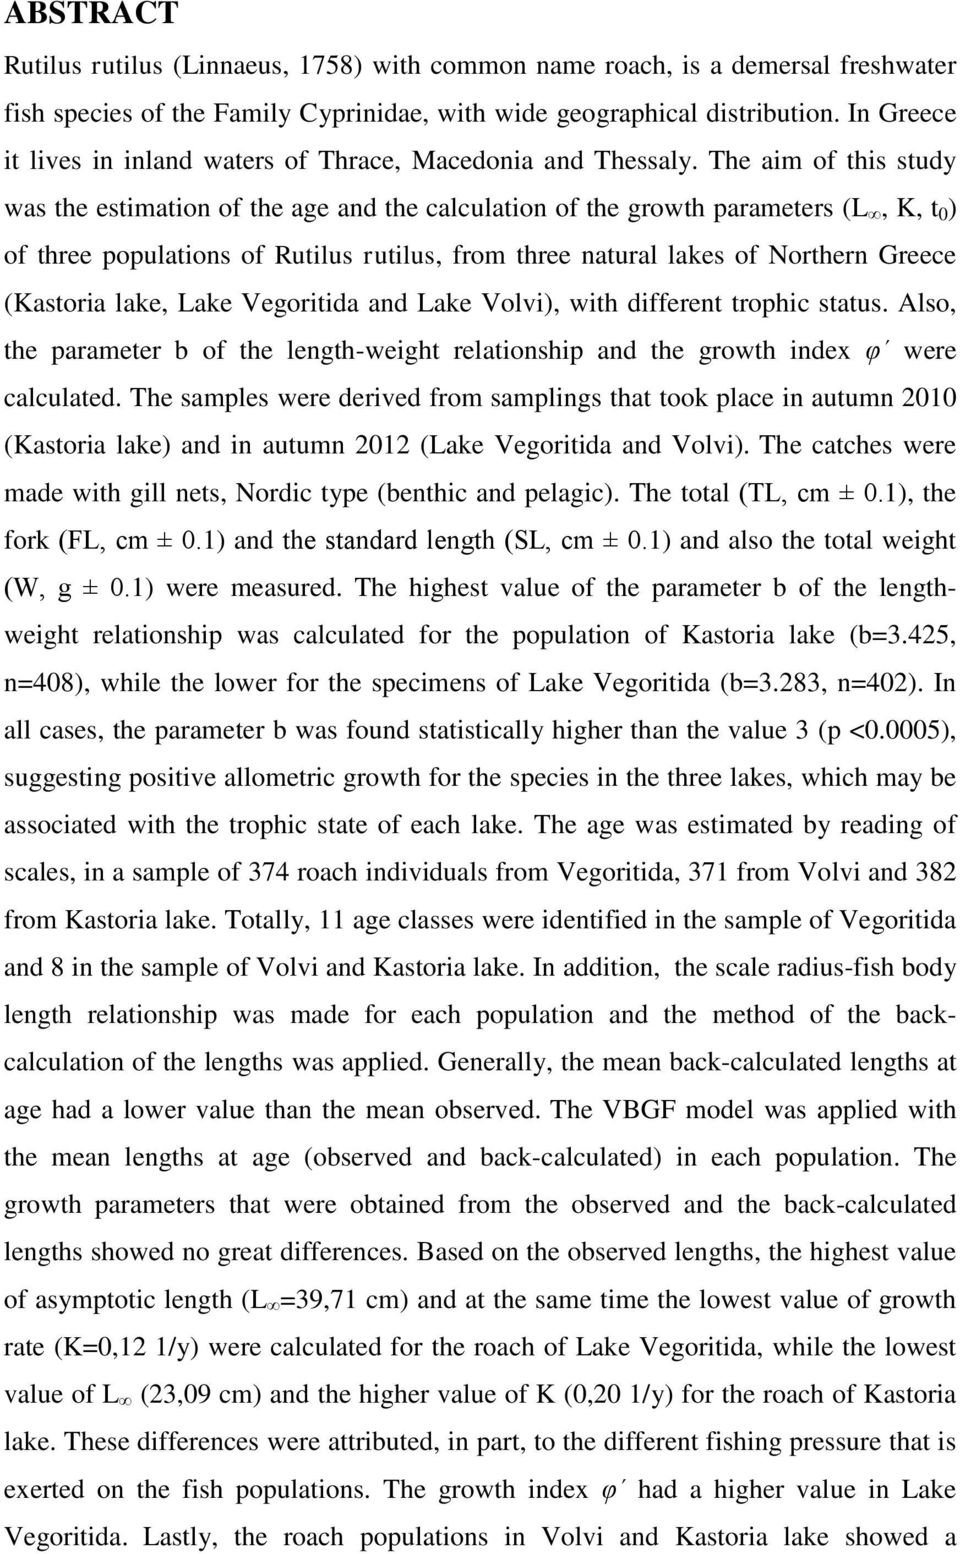 The aim of this study was the estimation of the age and the calculation of the growth parameters (L, K, t 0 ) of three populations of Rutilus rutilus, from three natural lakes of Northern Greece